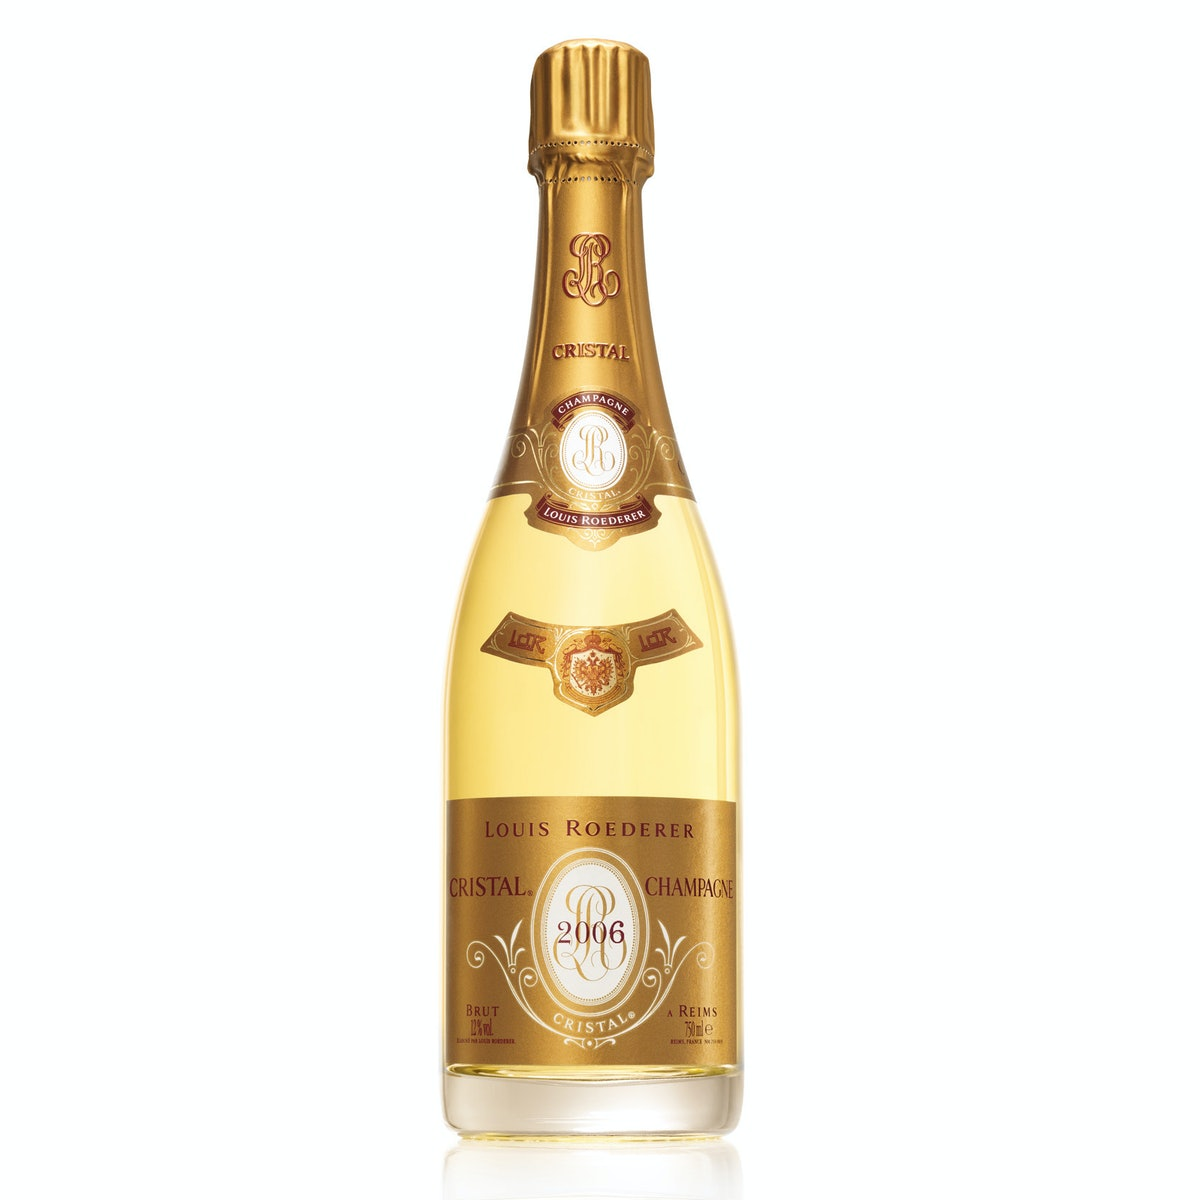 Louis Roederer Cristal champagne 2006